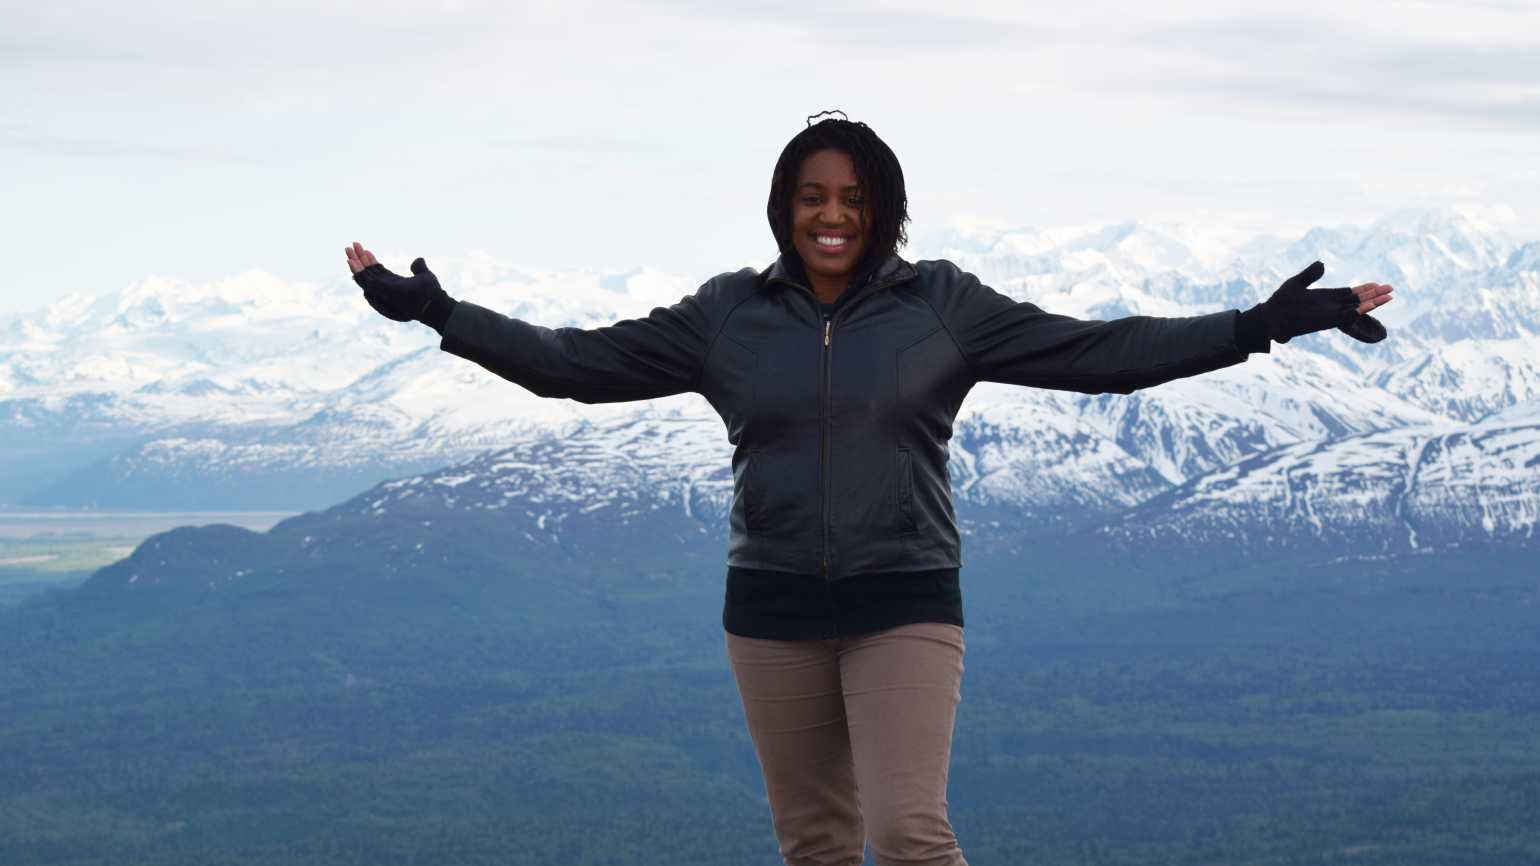 Guideposts senior digital editor Brooke Obie stands on top of an Alaskan mountain range